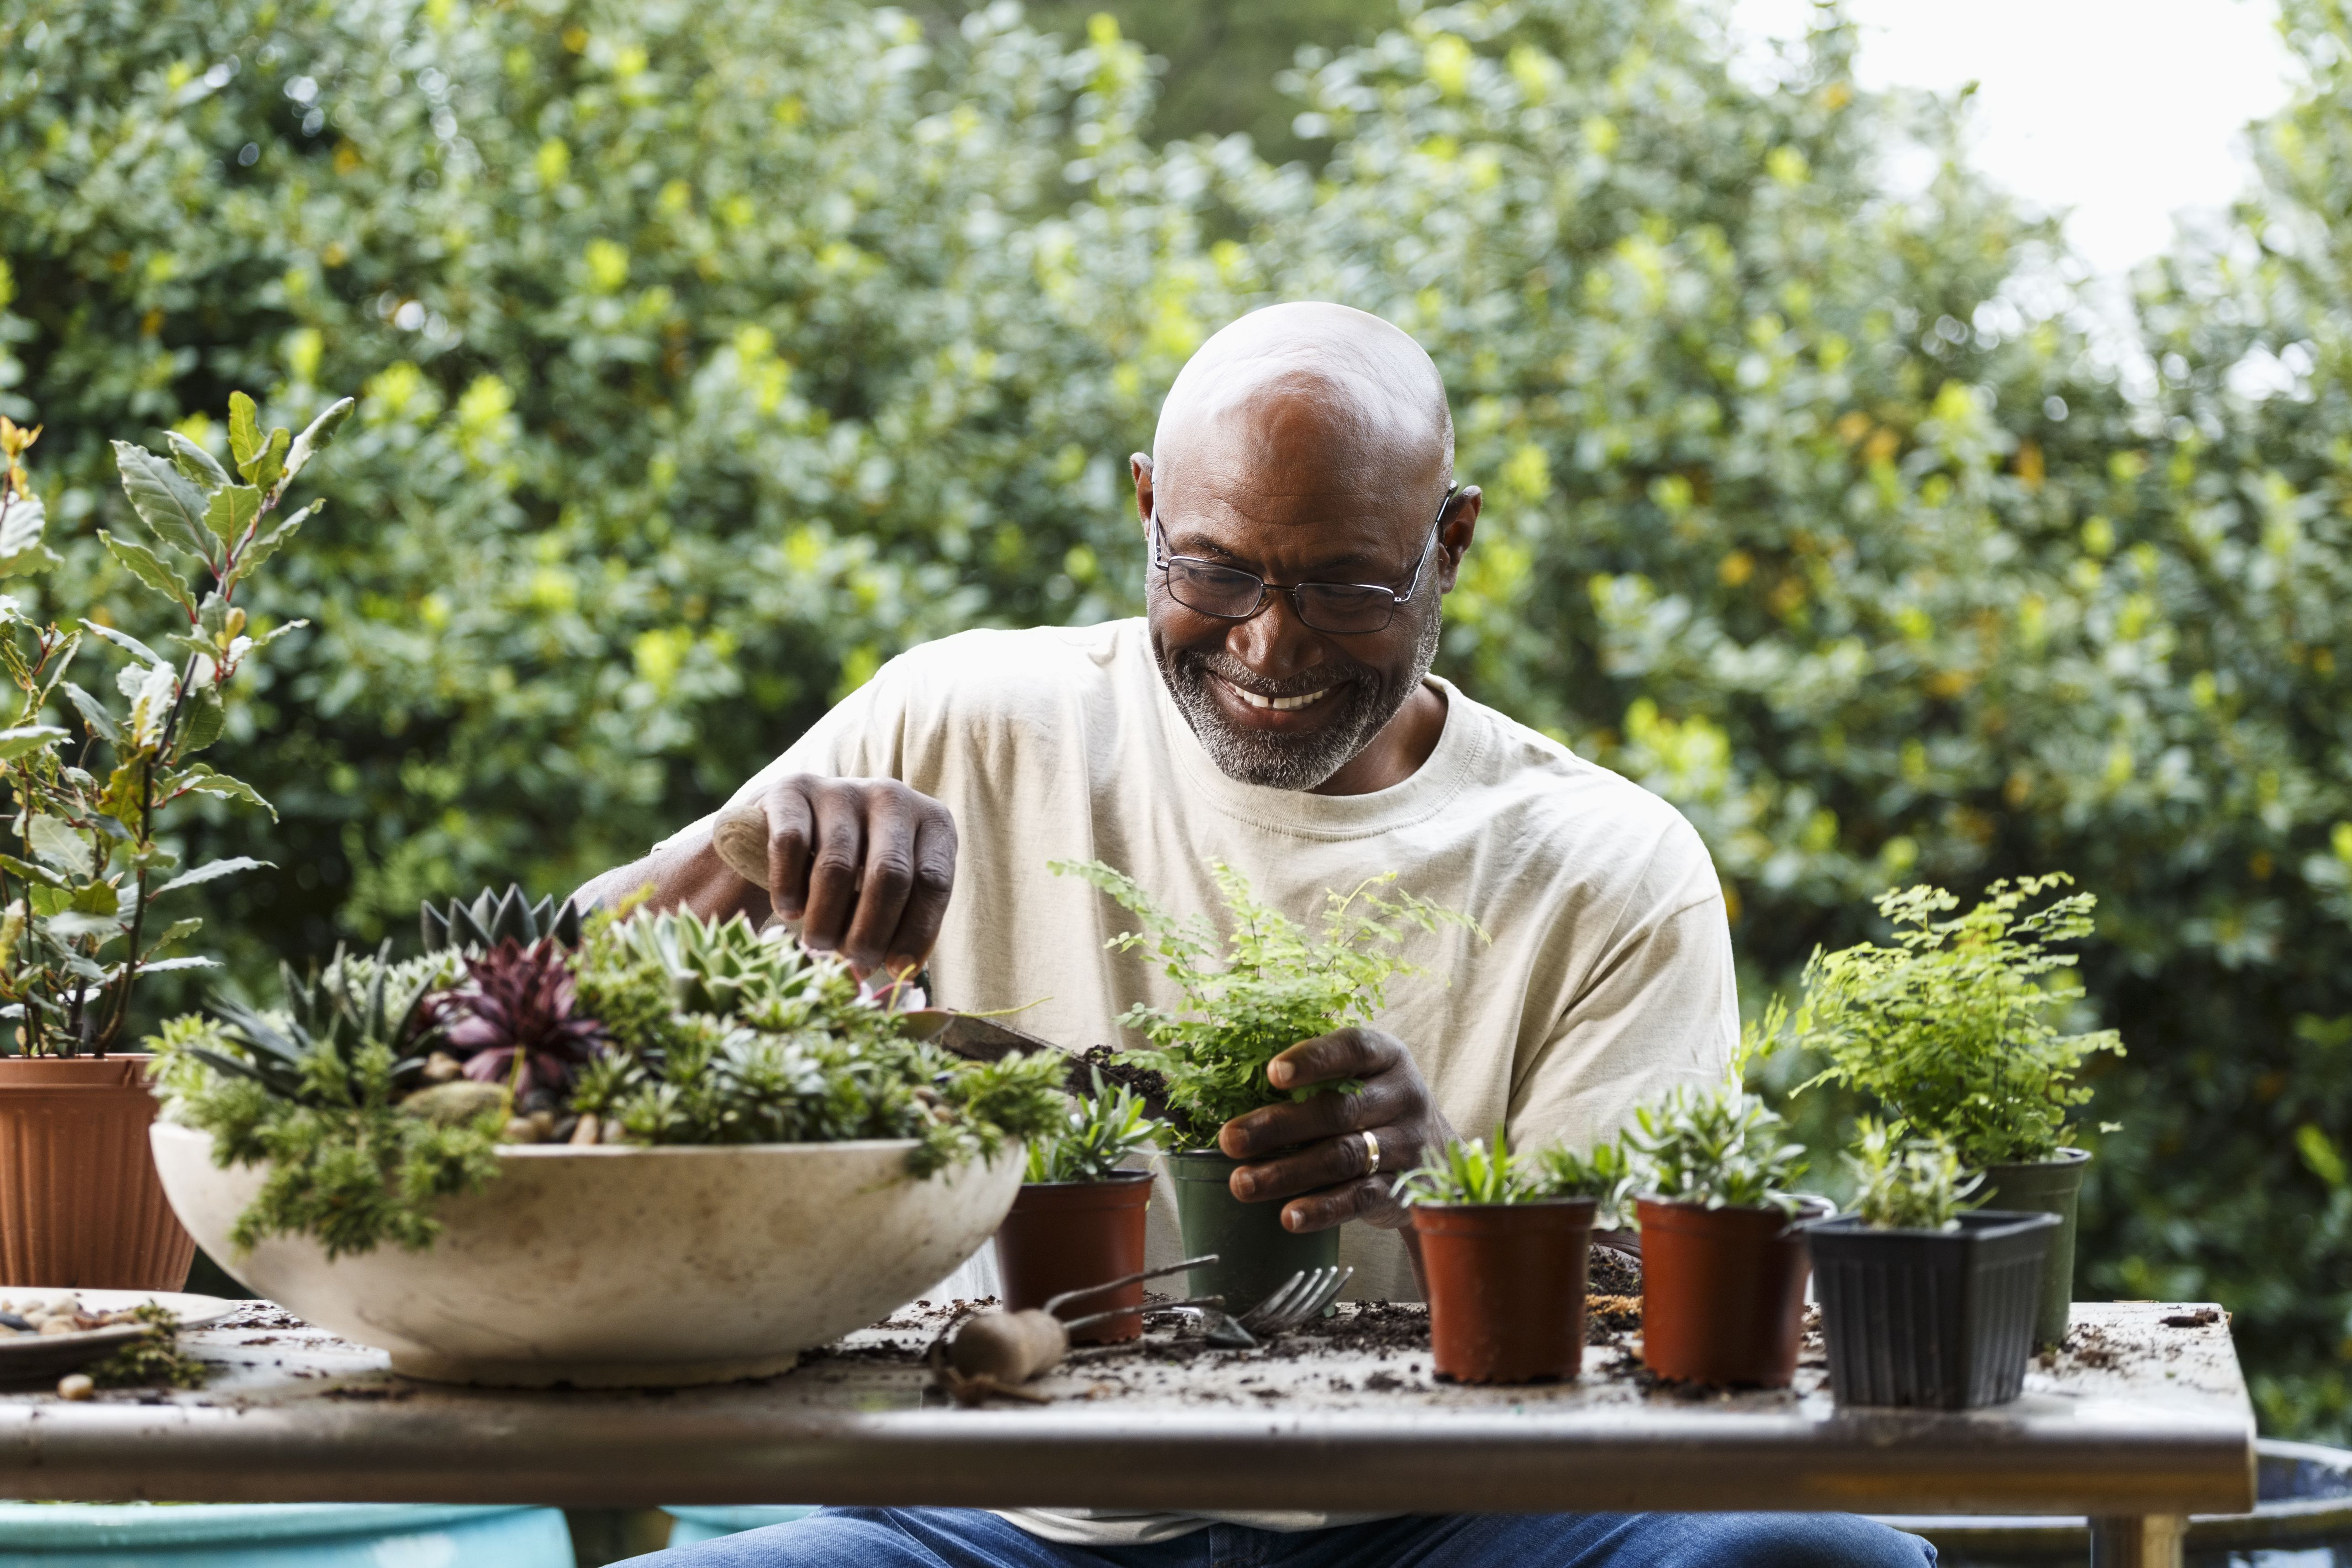 Gardening Gifts For Him >> The 9 Best Gardening Gifts For Men In 2020